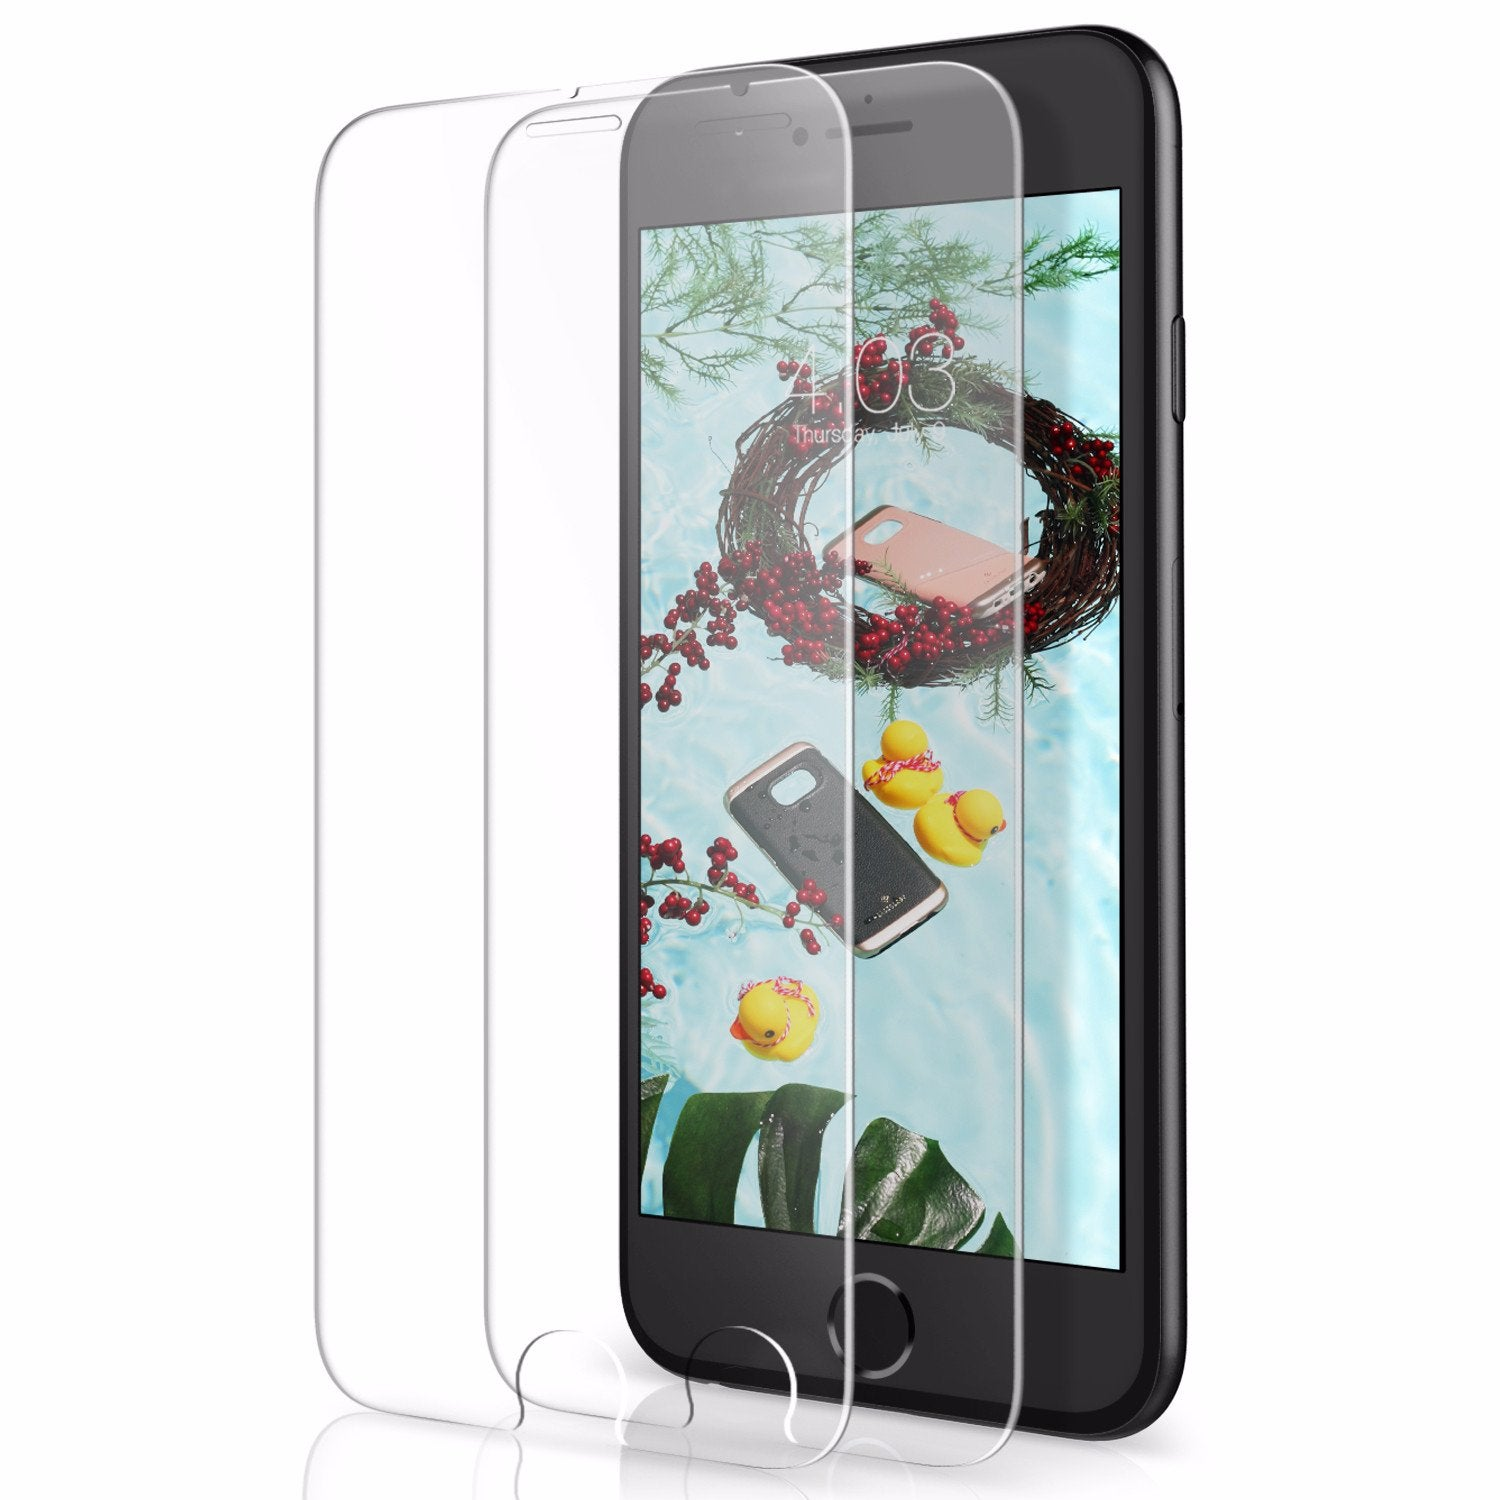 X iPhone 6/6S Plus Screen Protector